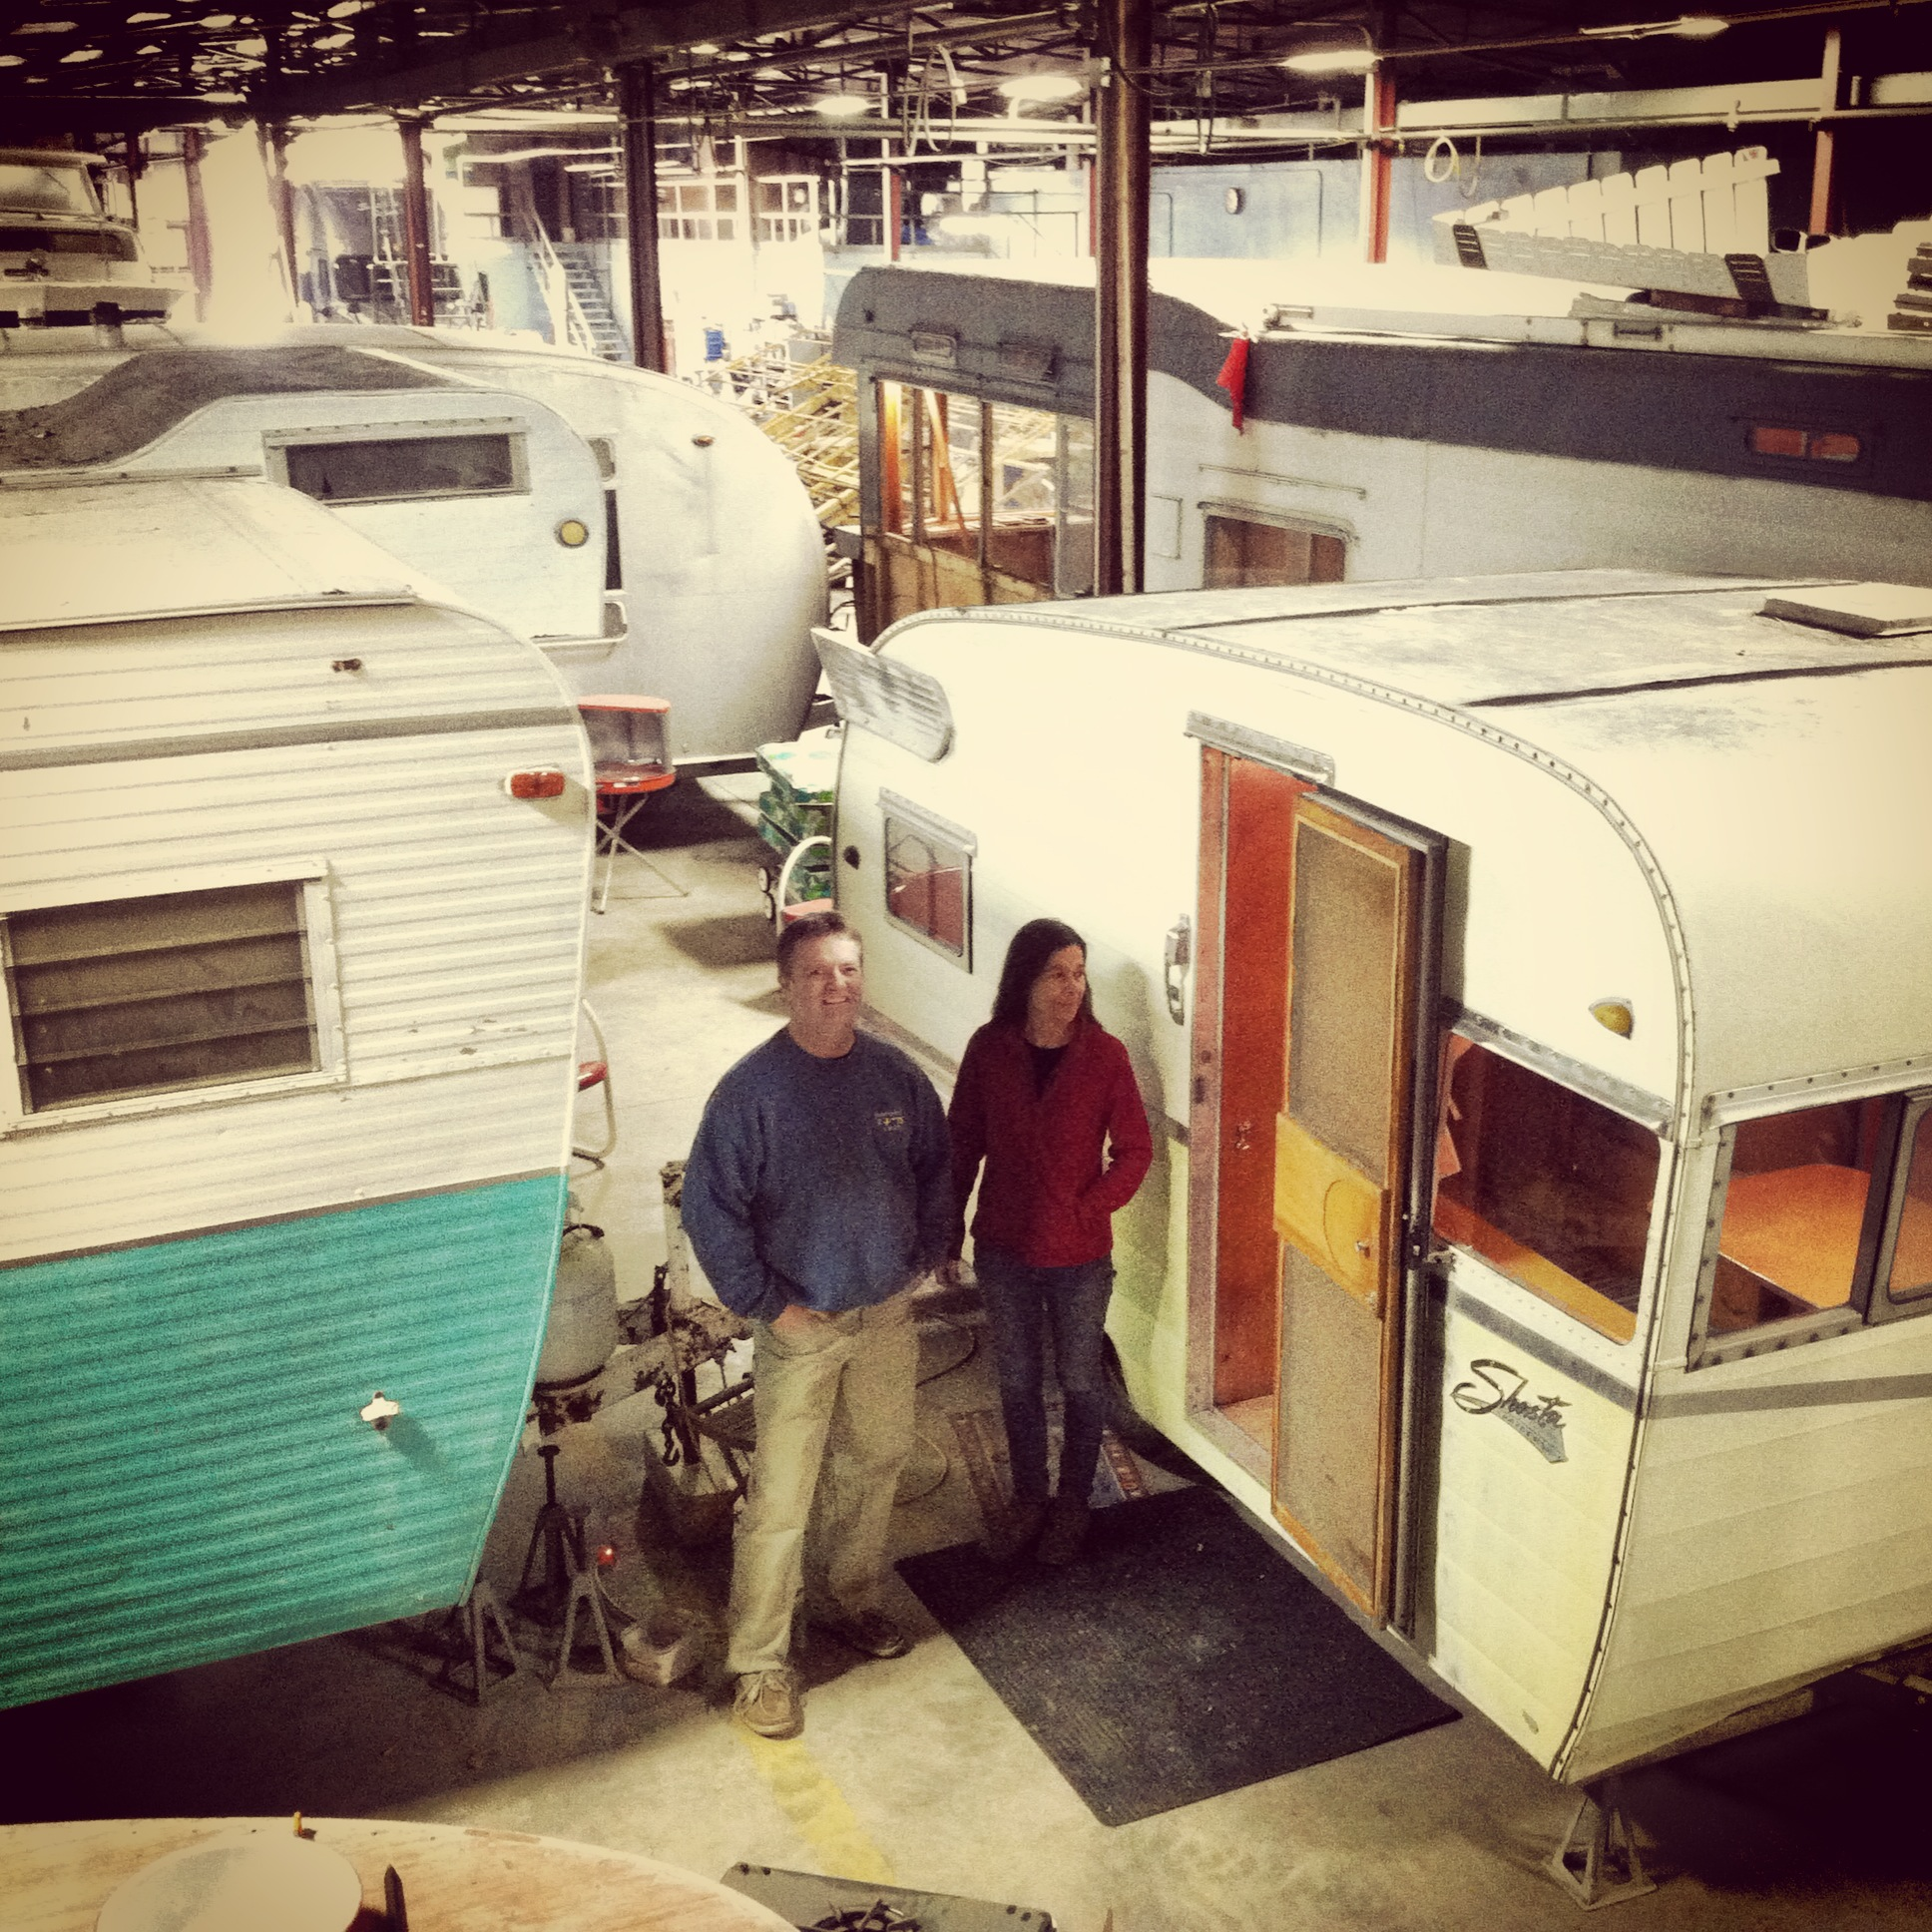 Christie Webber And Shawn Fairchild Are Collecting Restoring Vintage Trailers In Their Spare Time